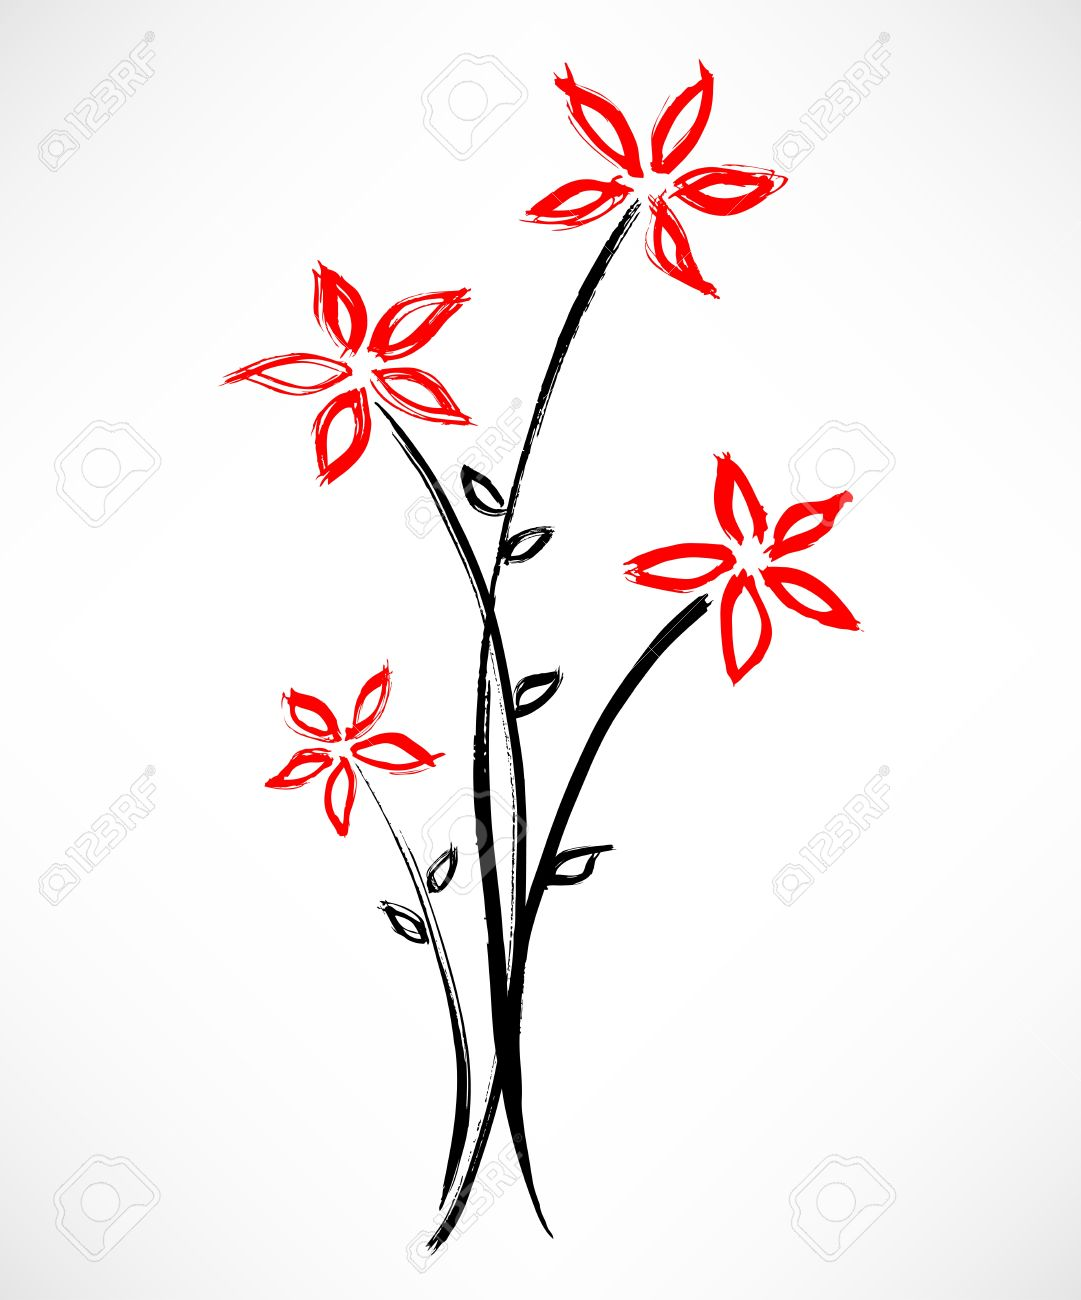 Simple Flower Painting Stock Vector - 10461651